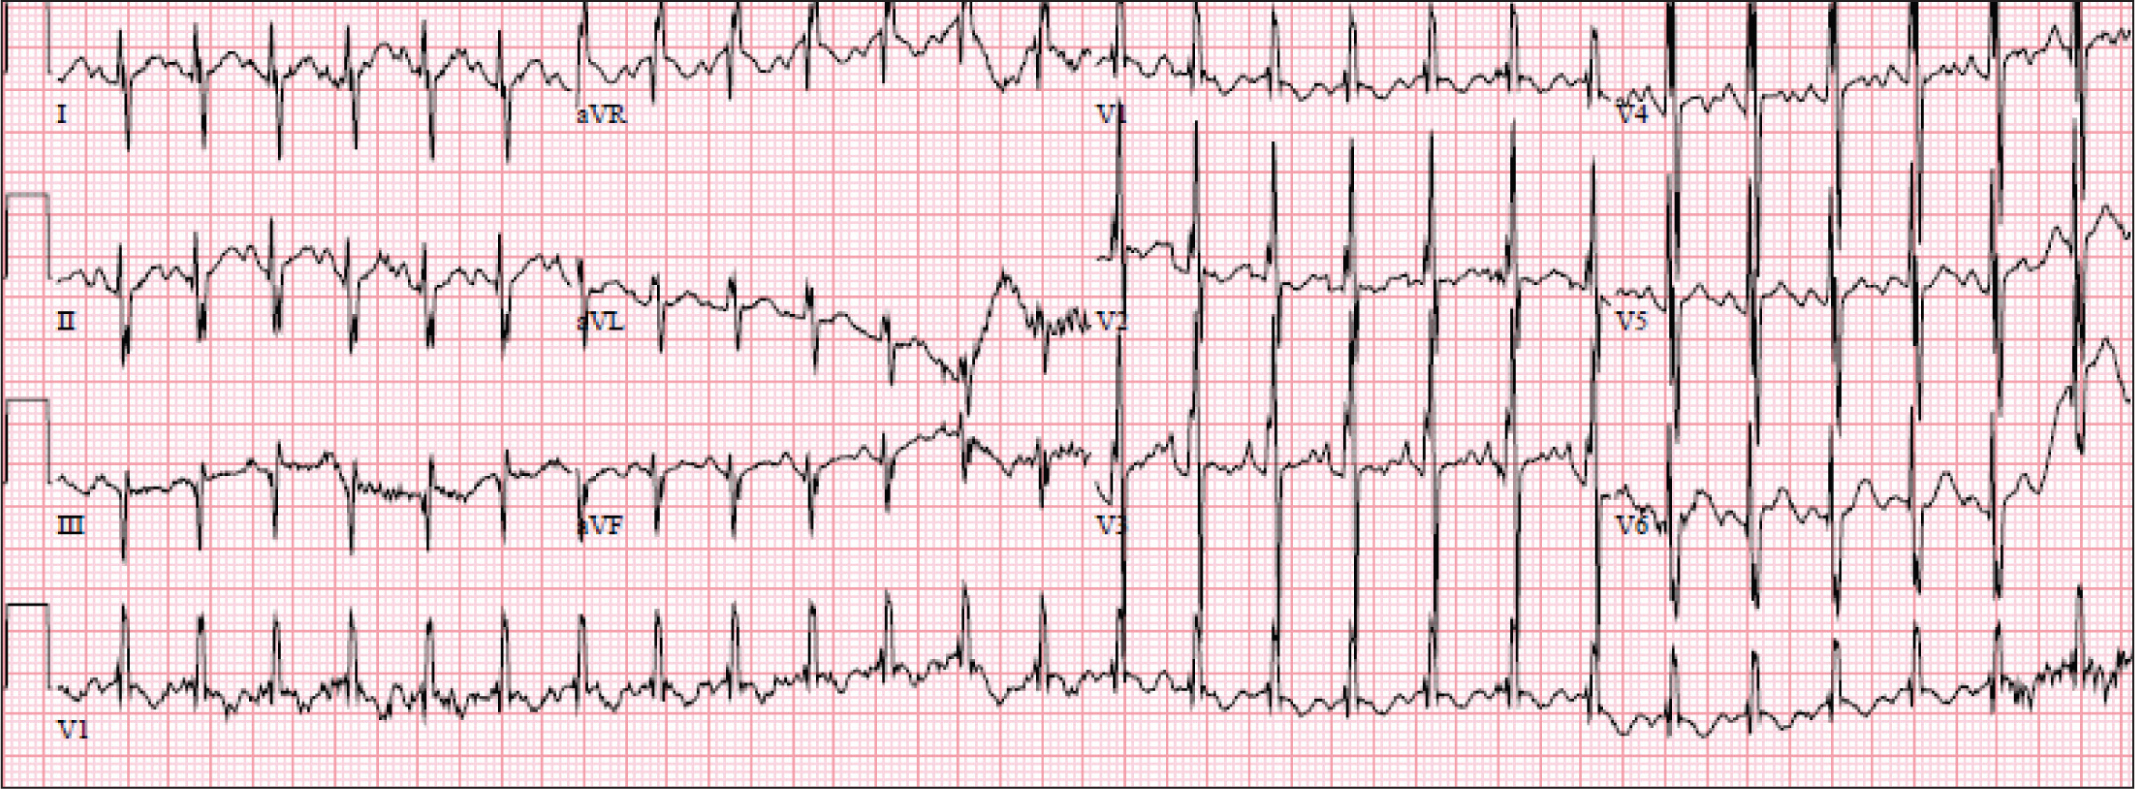 Electrocardiogram demonstrating sinus tachycardia, right superior axis (axis >180°), and right ventricular hypertrophy.